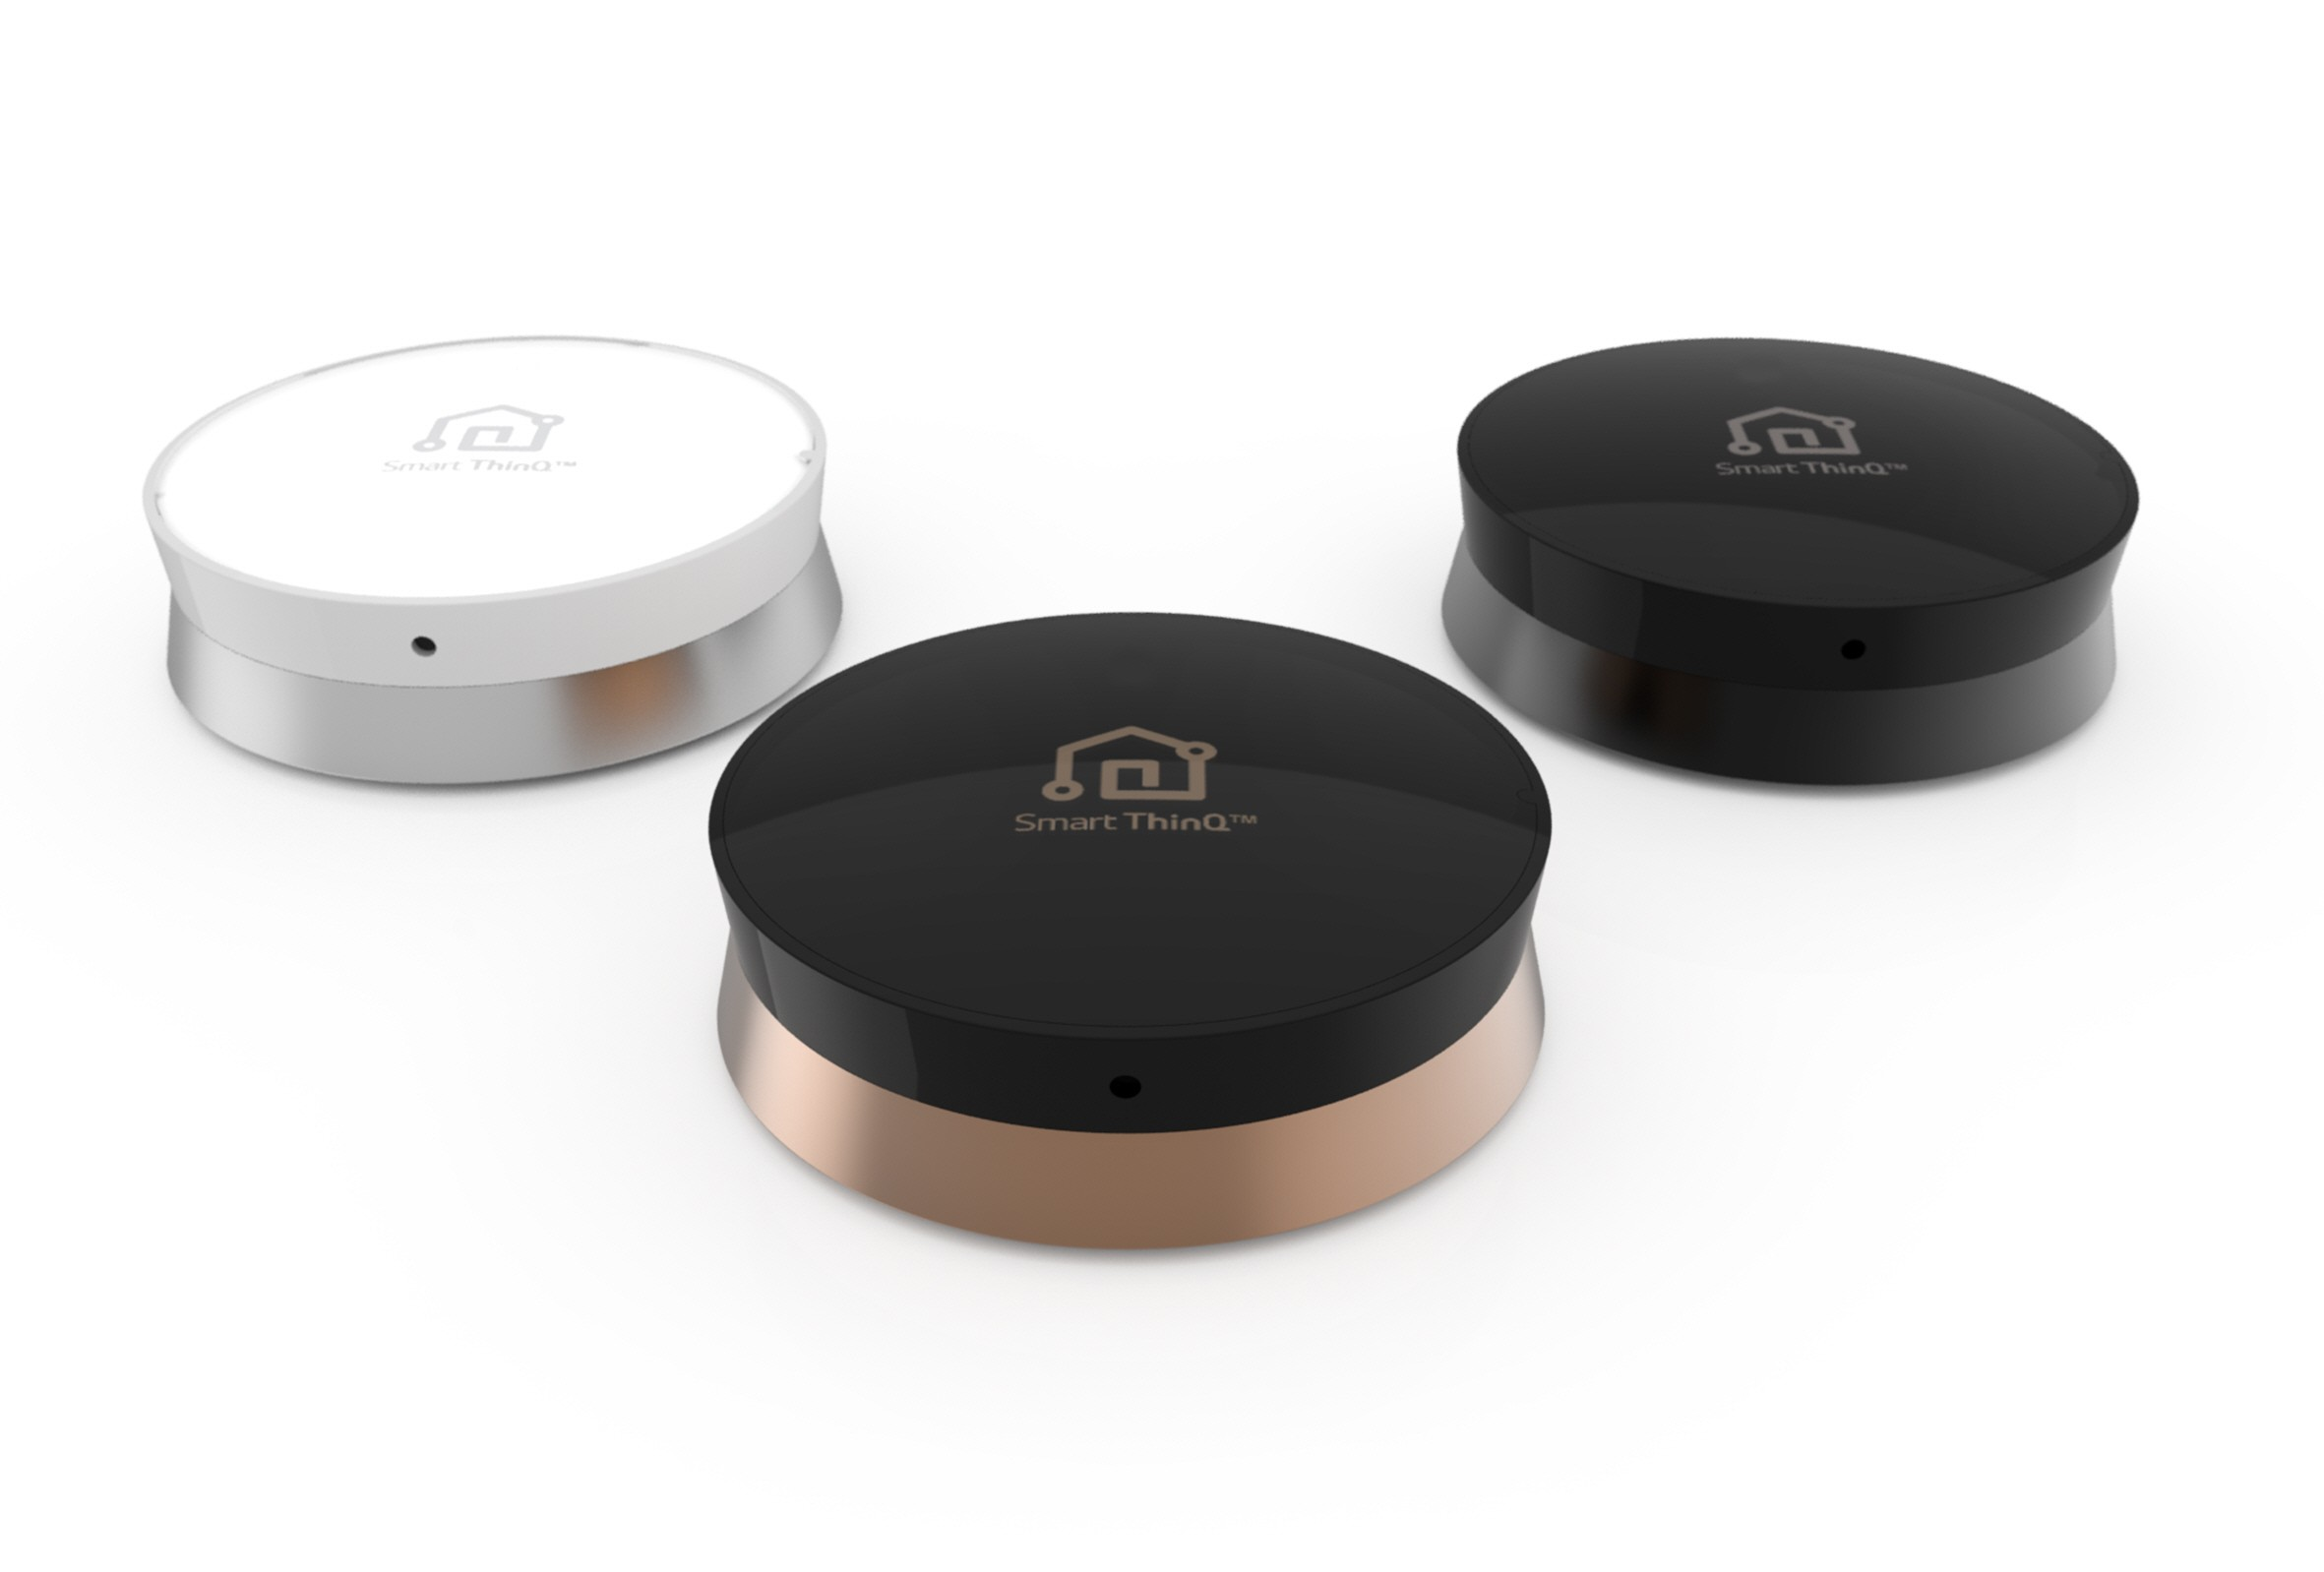 Three SmartThinQ™ Sensors with different colors, white and silver, black and gold, and black.